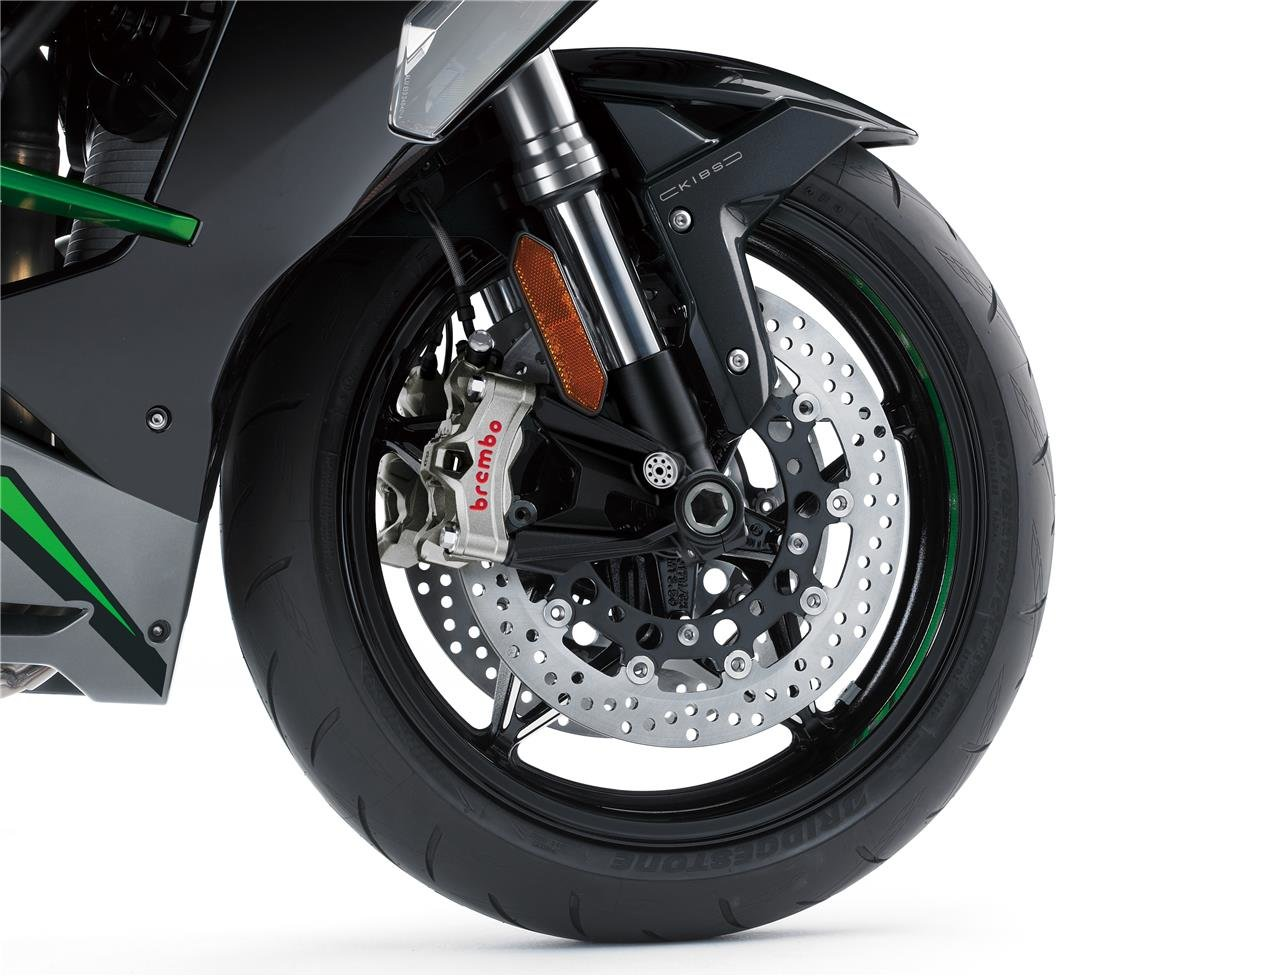 New 2020 Kawasaki Ninja H2 SX SE + Perf Tourer**£1,500 PAID* For Sale (picture 6 of 6)